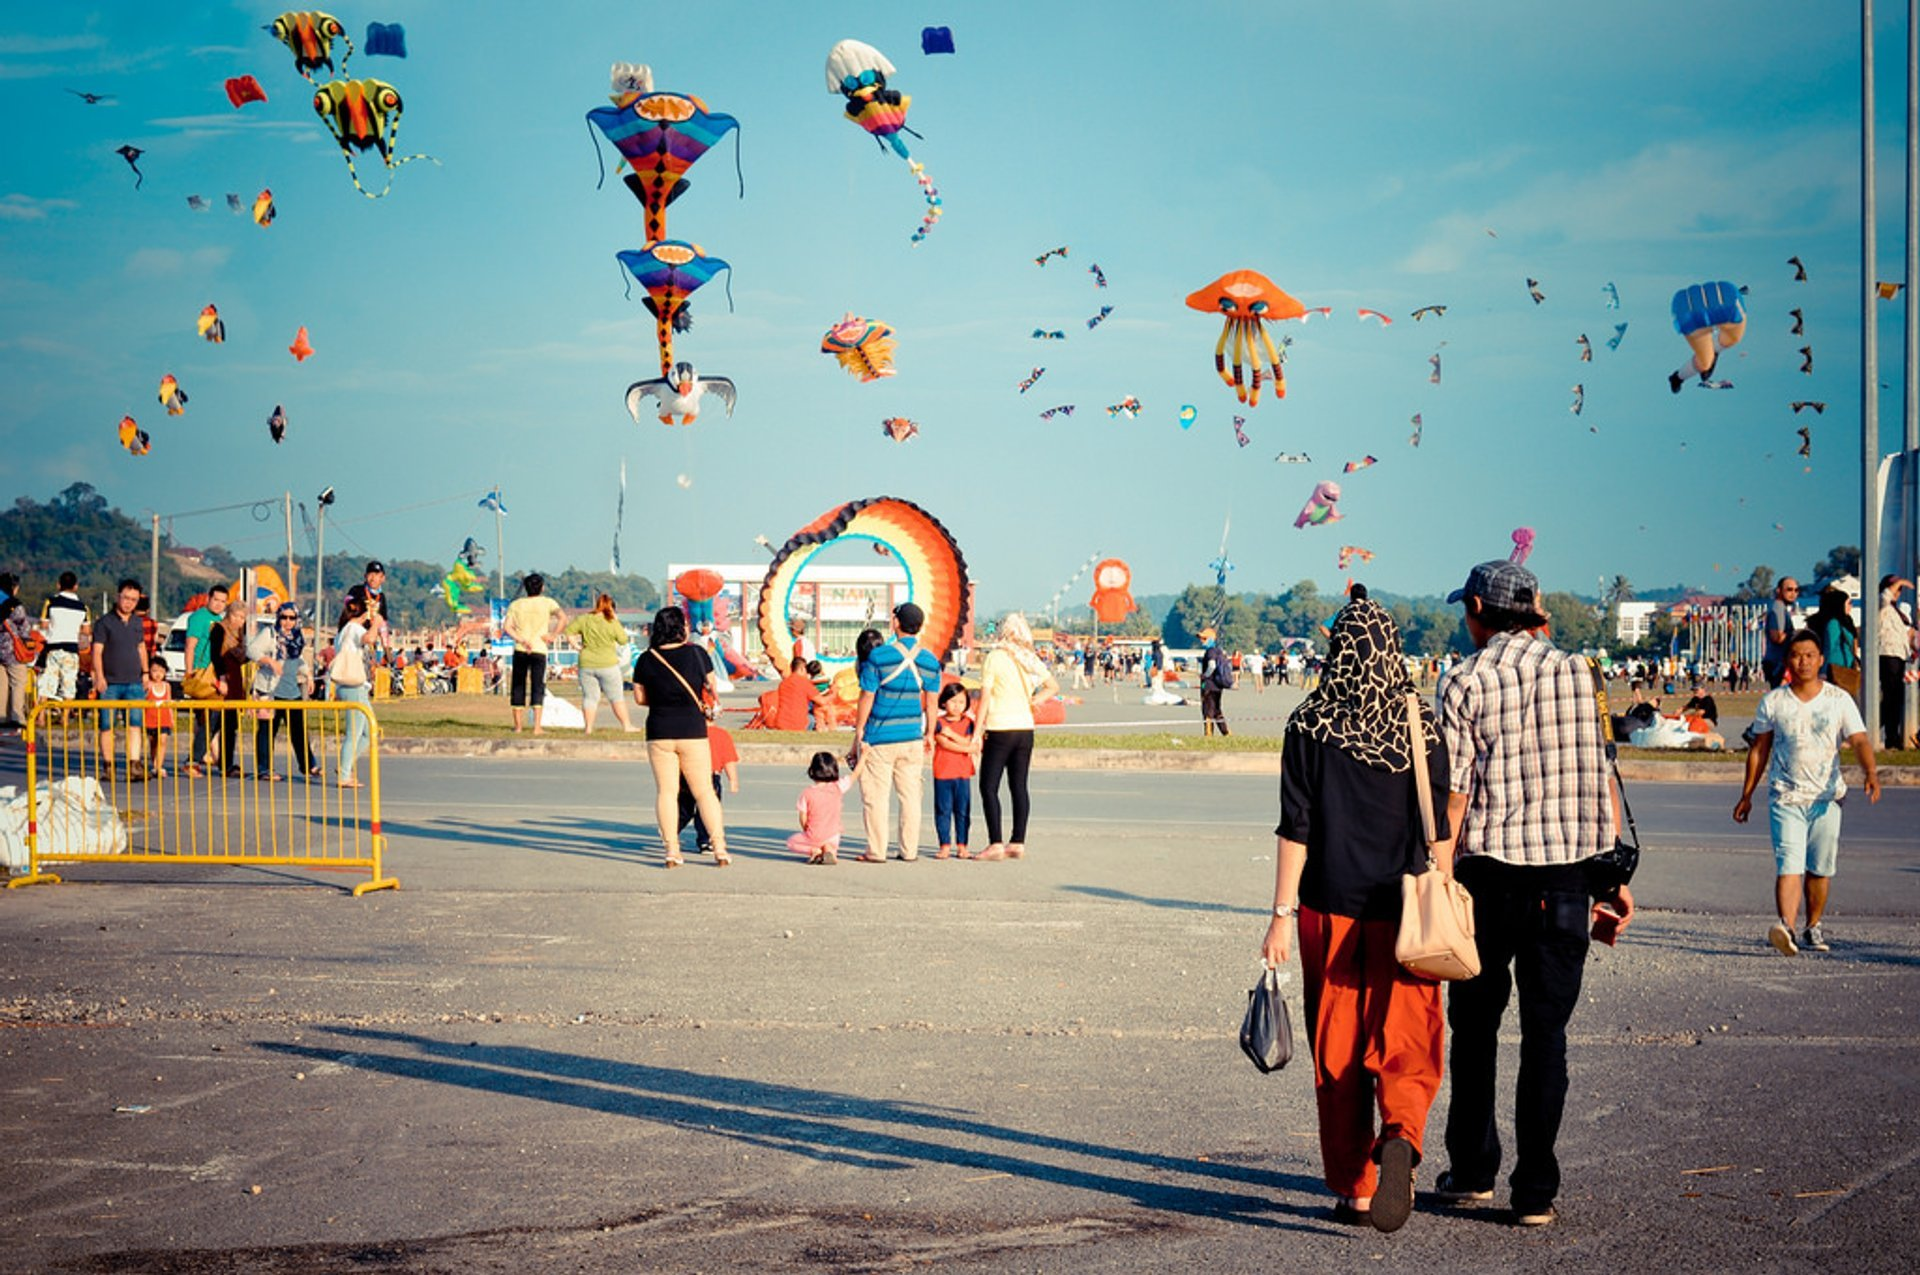 Borneo International Kite Festival in Borneo 2020 - Best Time